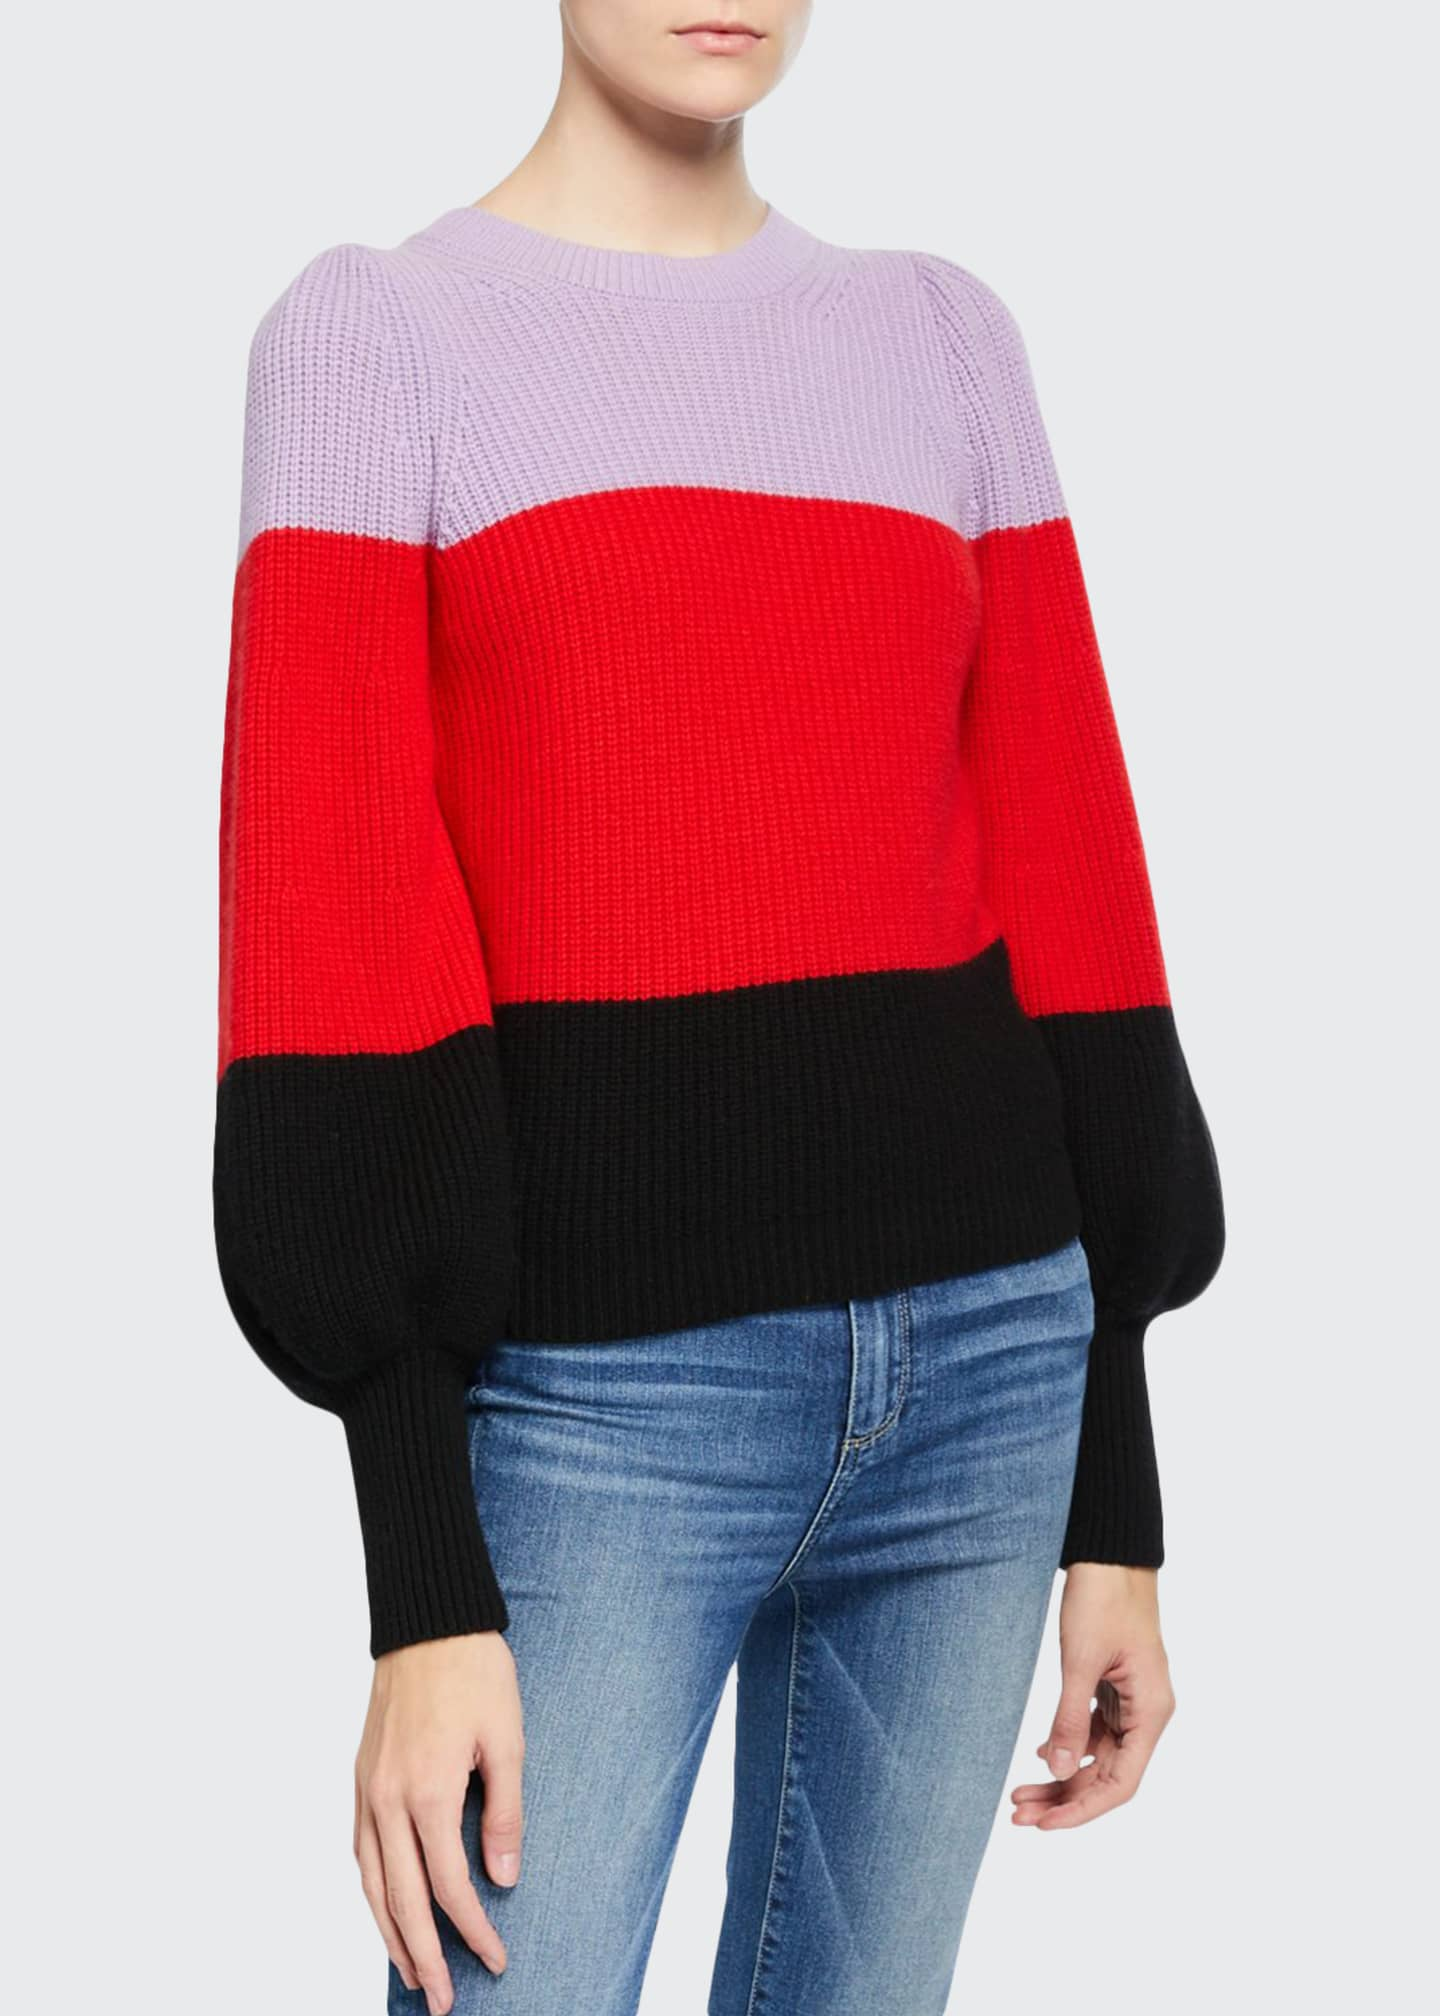 A.L.C. Sammy Colorblock Cashmere Sweater